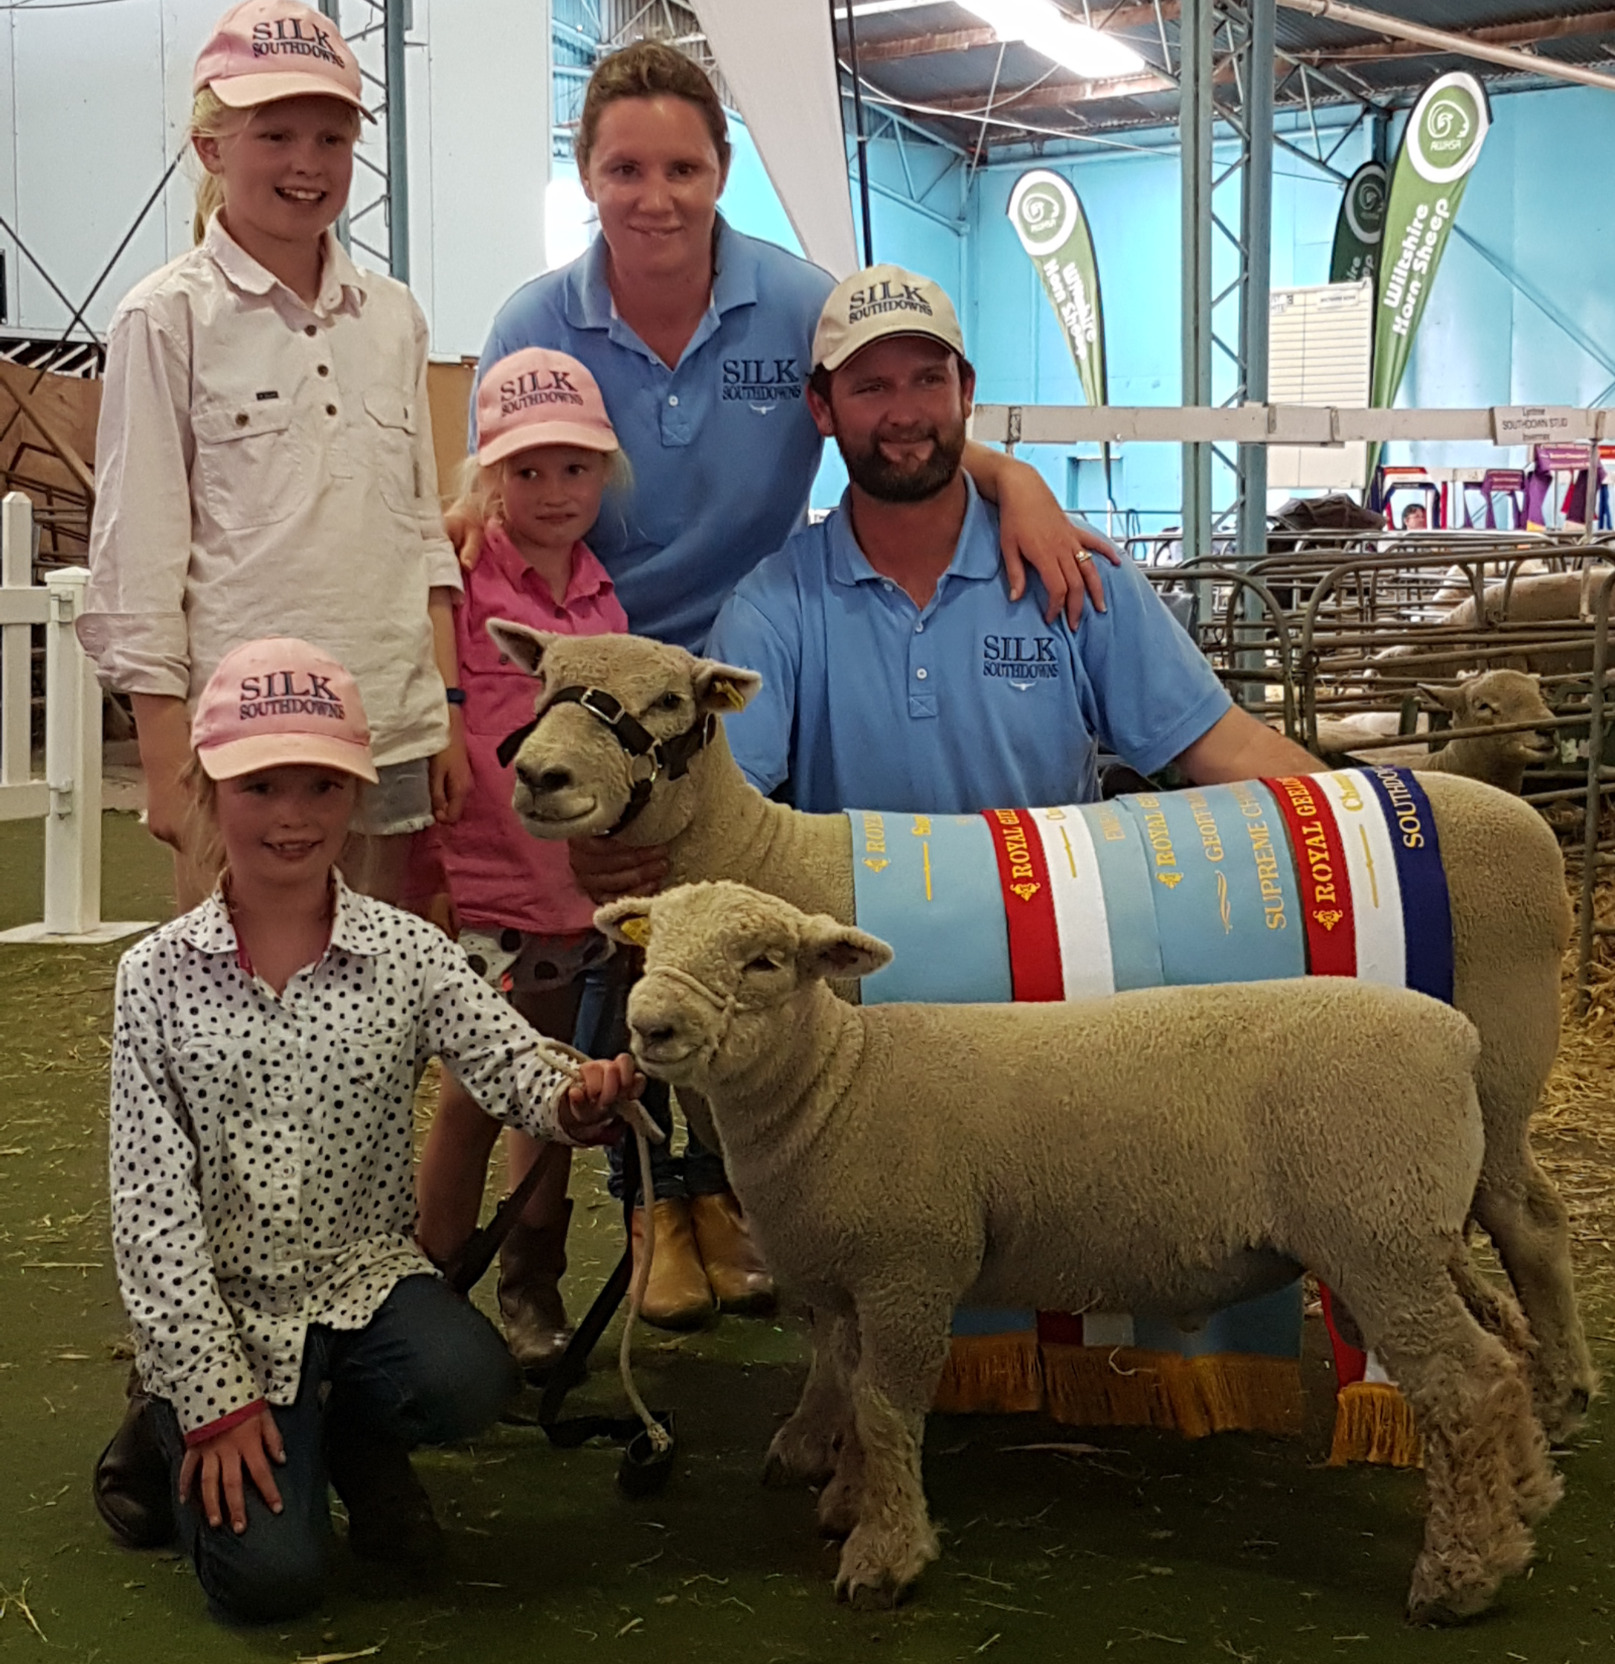 Supreme exhibit Royal Geelong show 2018